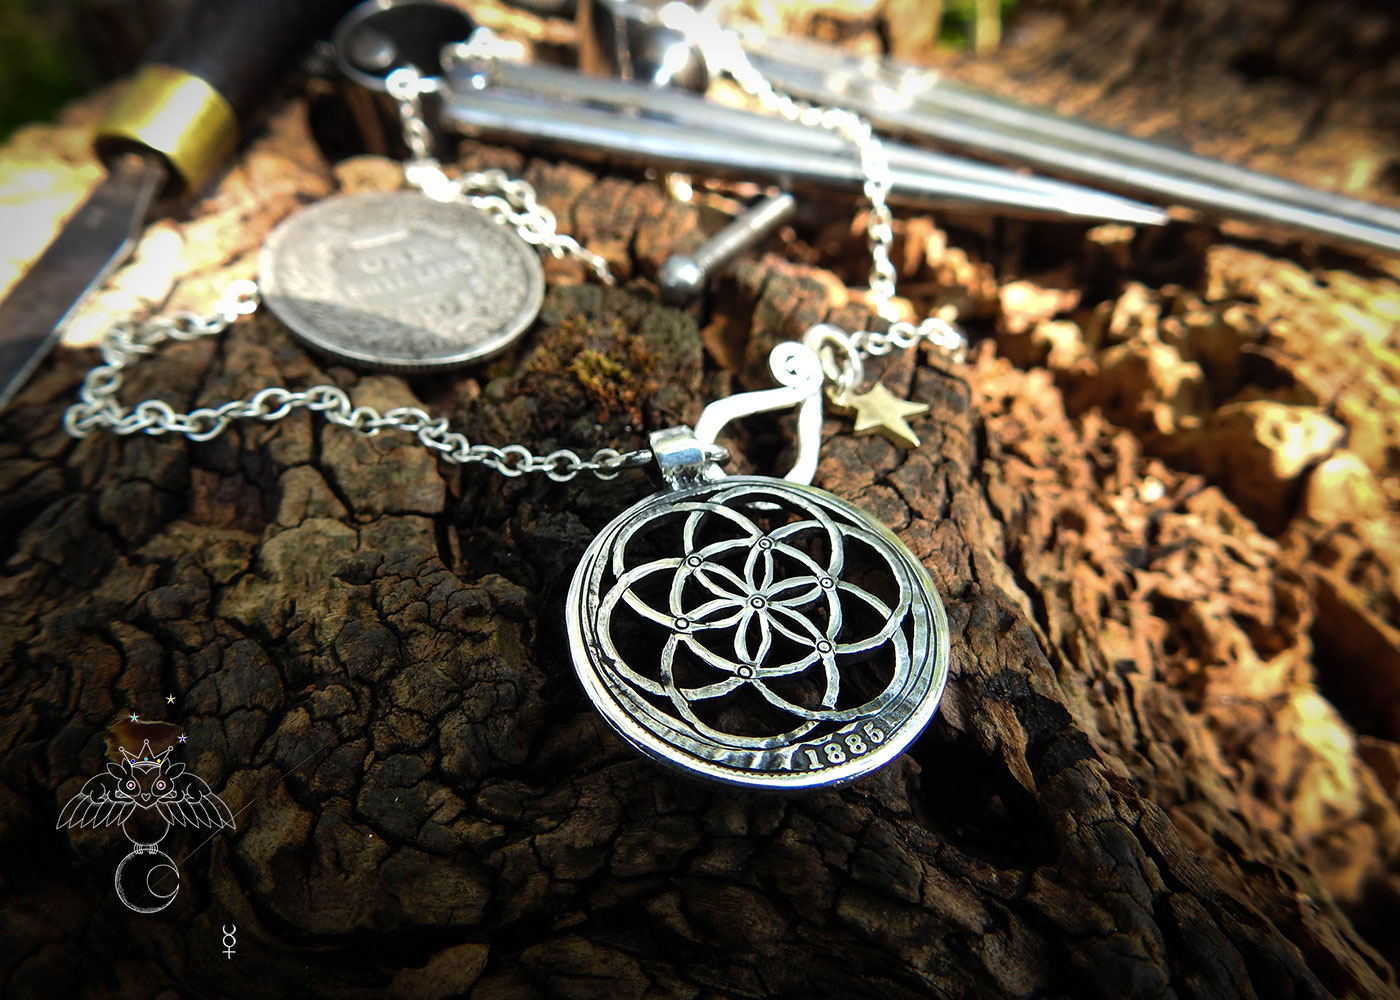 Sacred geometry jewellery - Handcrafted and recycled silver Victorian shilling.